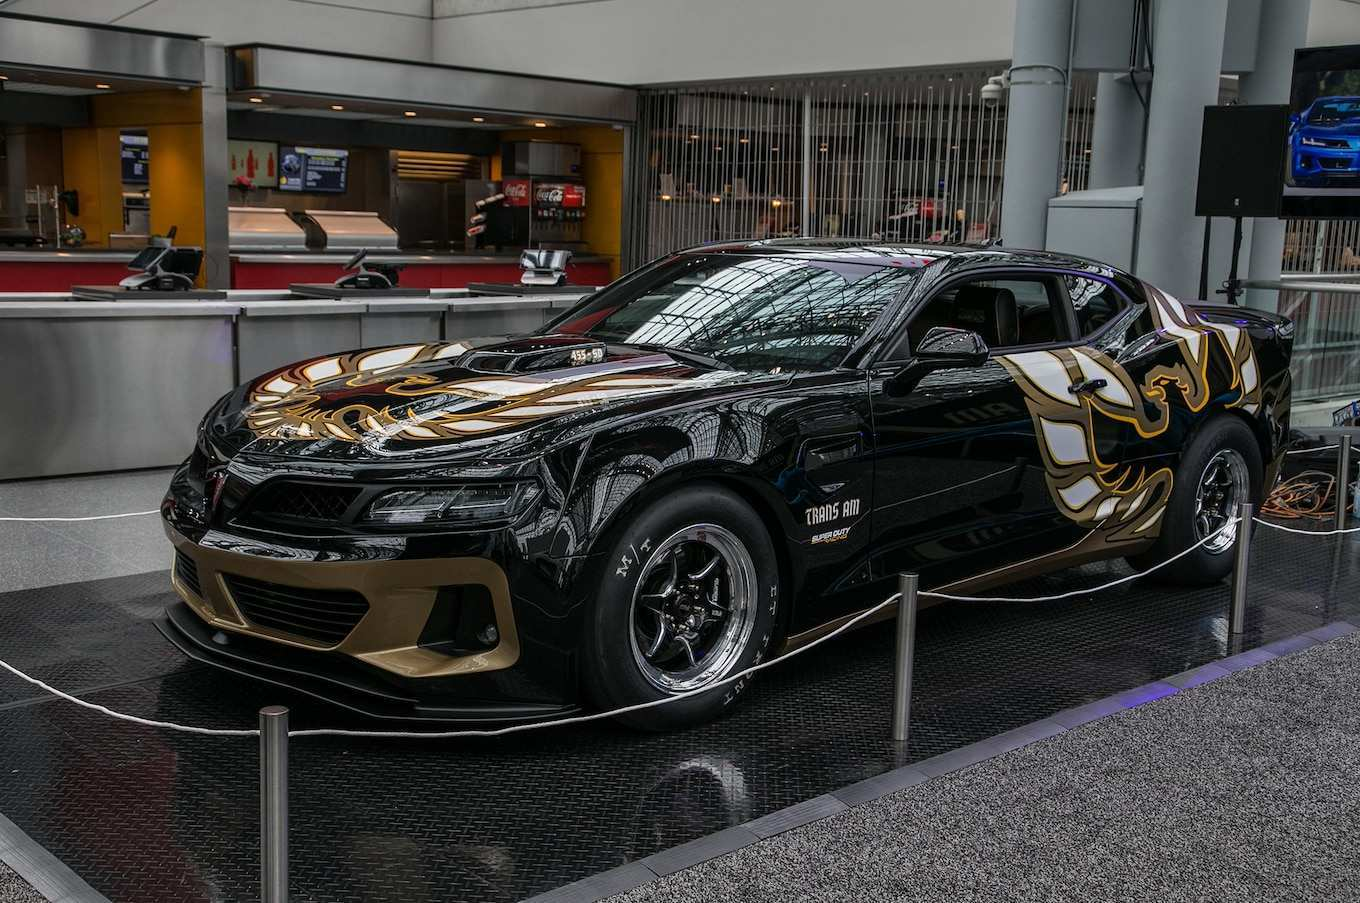 97 Gallery of 2019 Buick Trans Am Ratings with 2019 Buick Trans Am